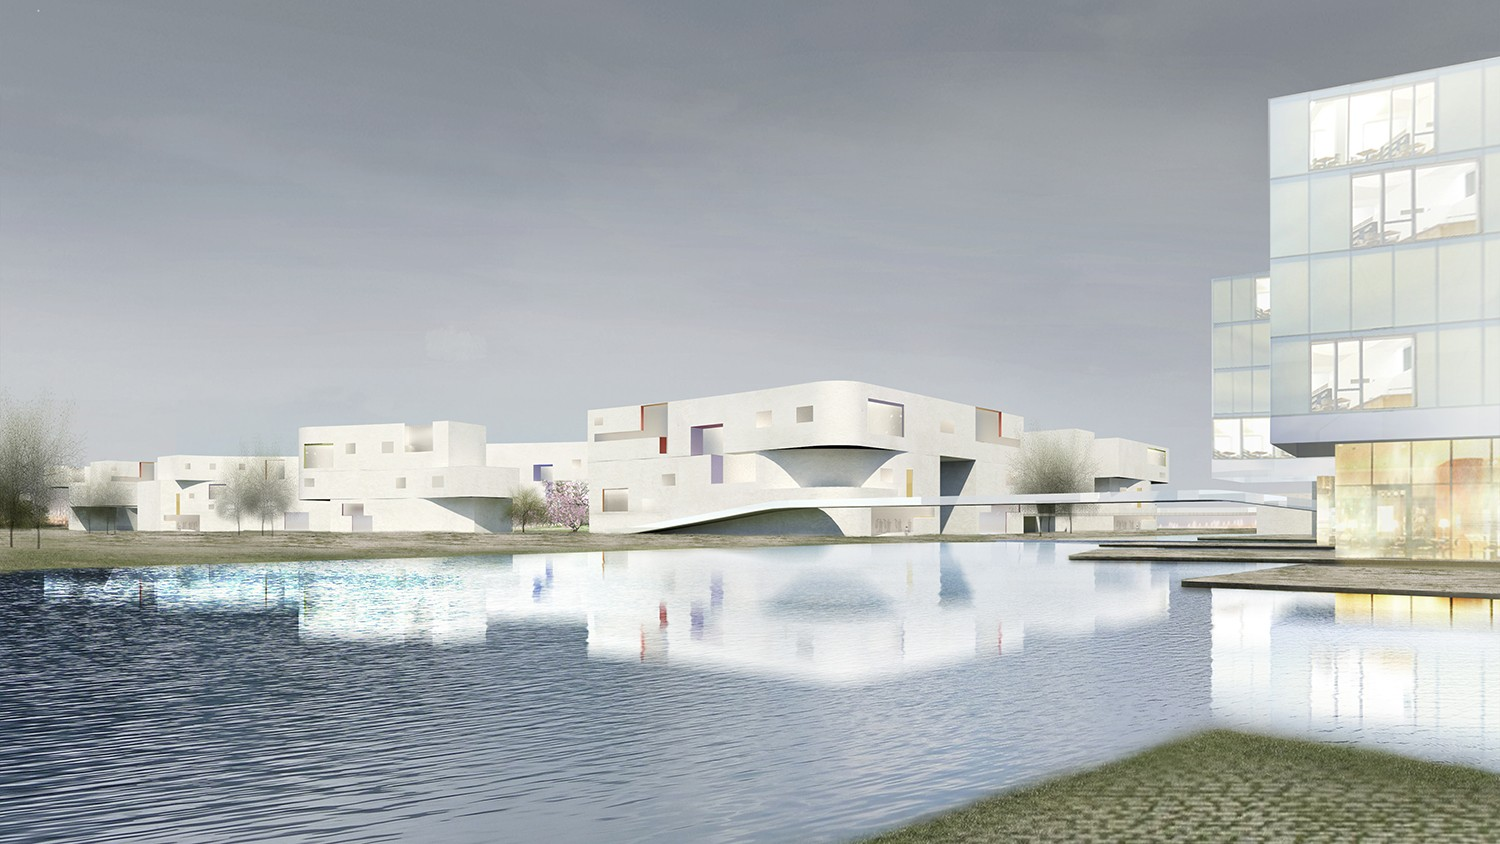 https://s3.us-east-2.amazonaws.com/steven-holl/uploads/projects/project-images/StevenHollArchitects_Shanghai_Camera04Malleable_WH.jpg